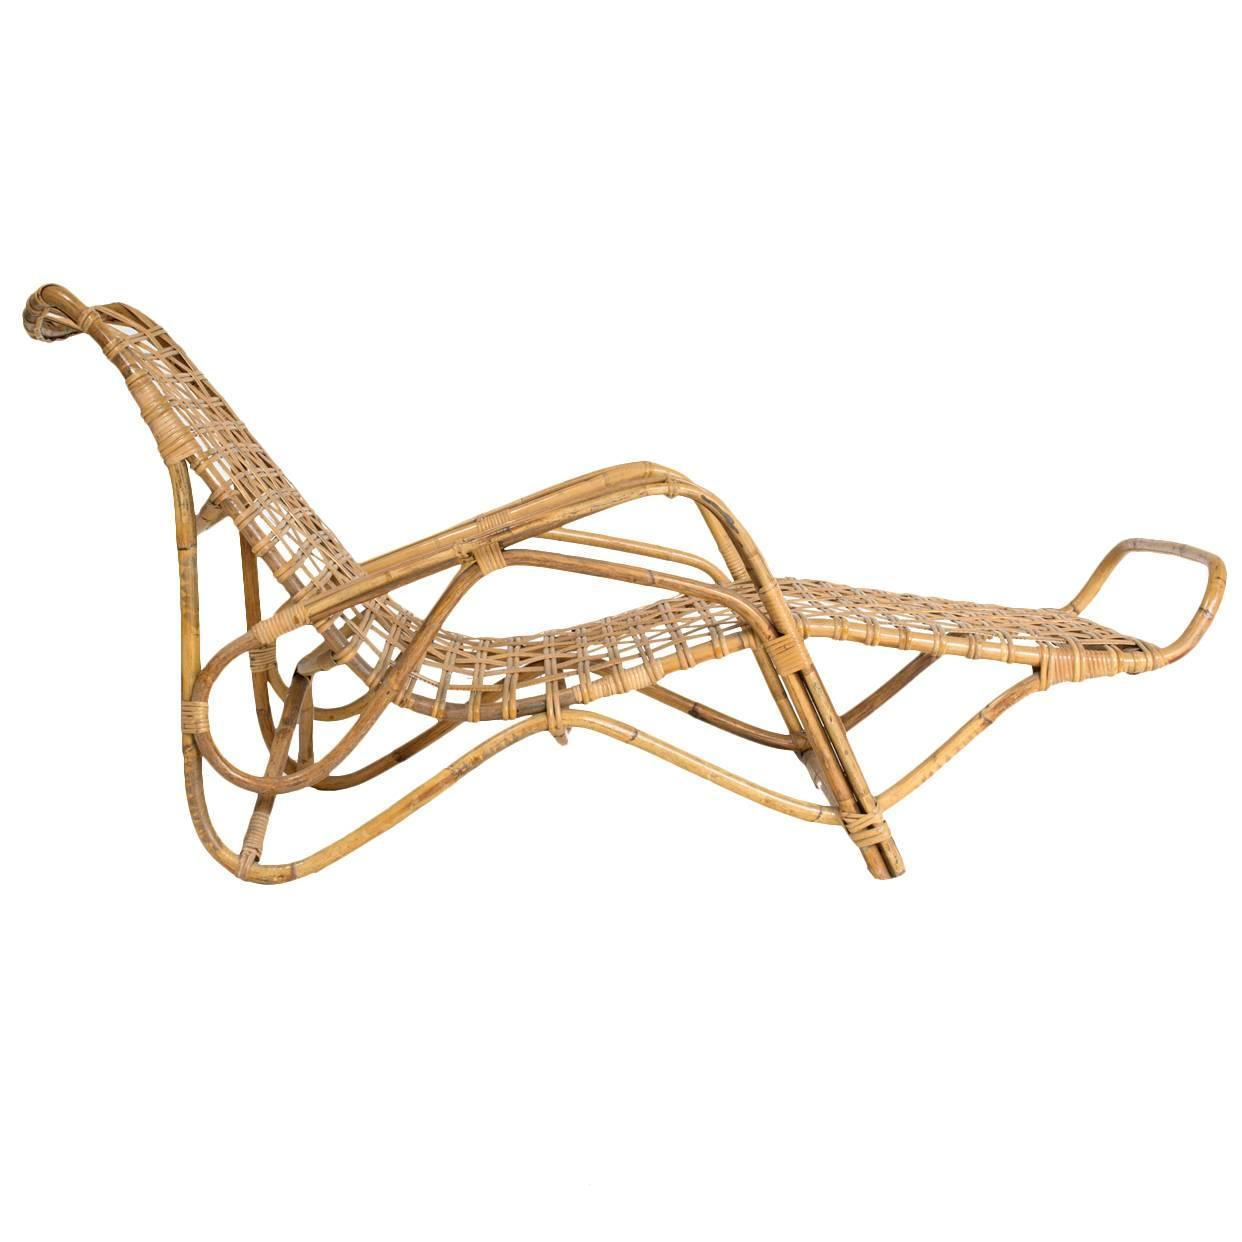 Vittorio bonacina rattan chaise longue for sale at 1stdibs for Chaise longue barcelona